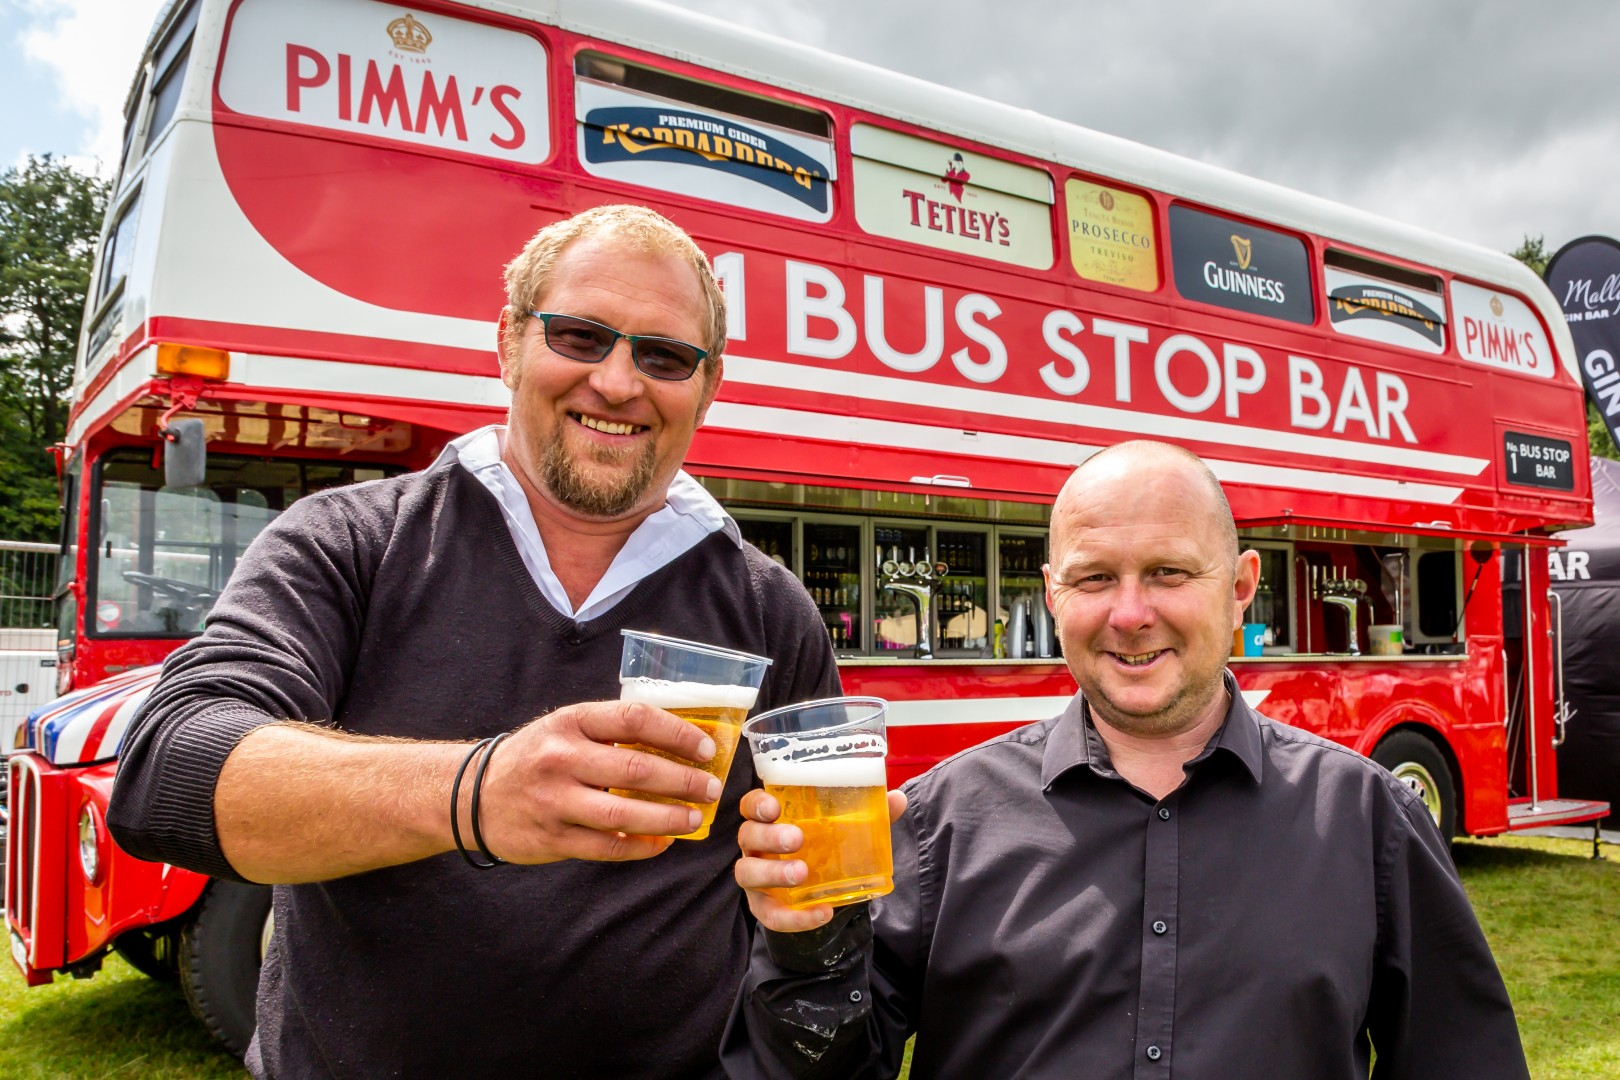 Bus Stop Bar Foodies Festival